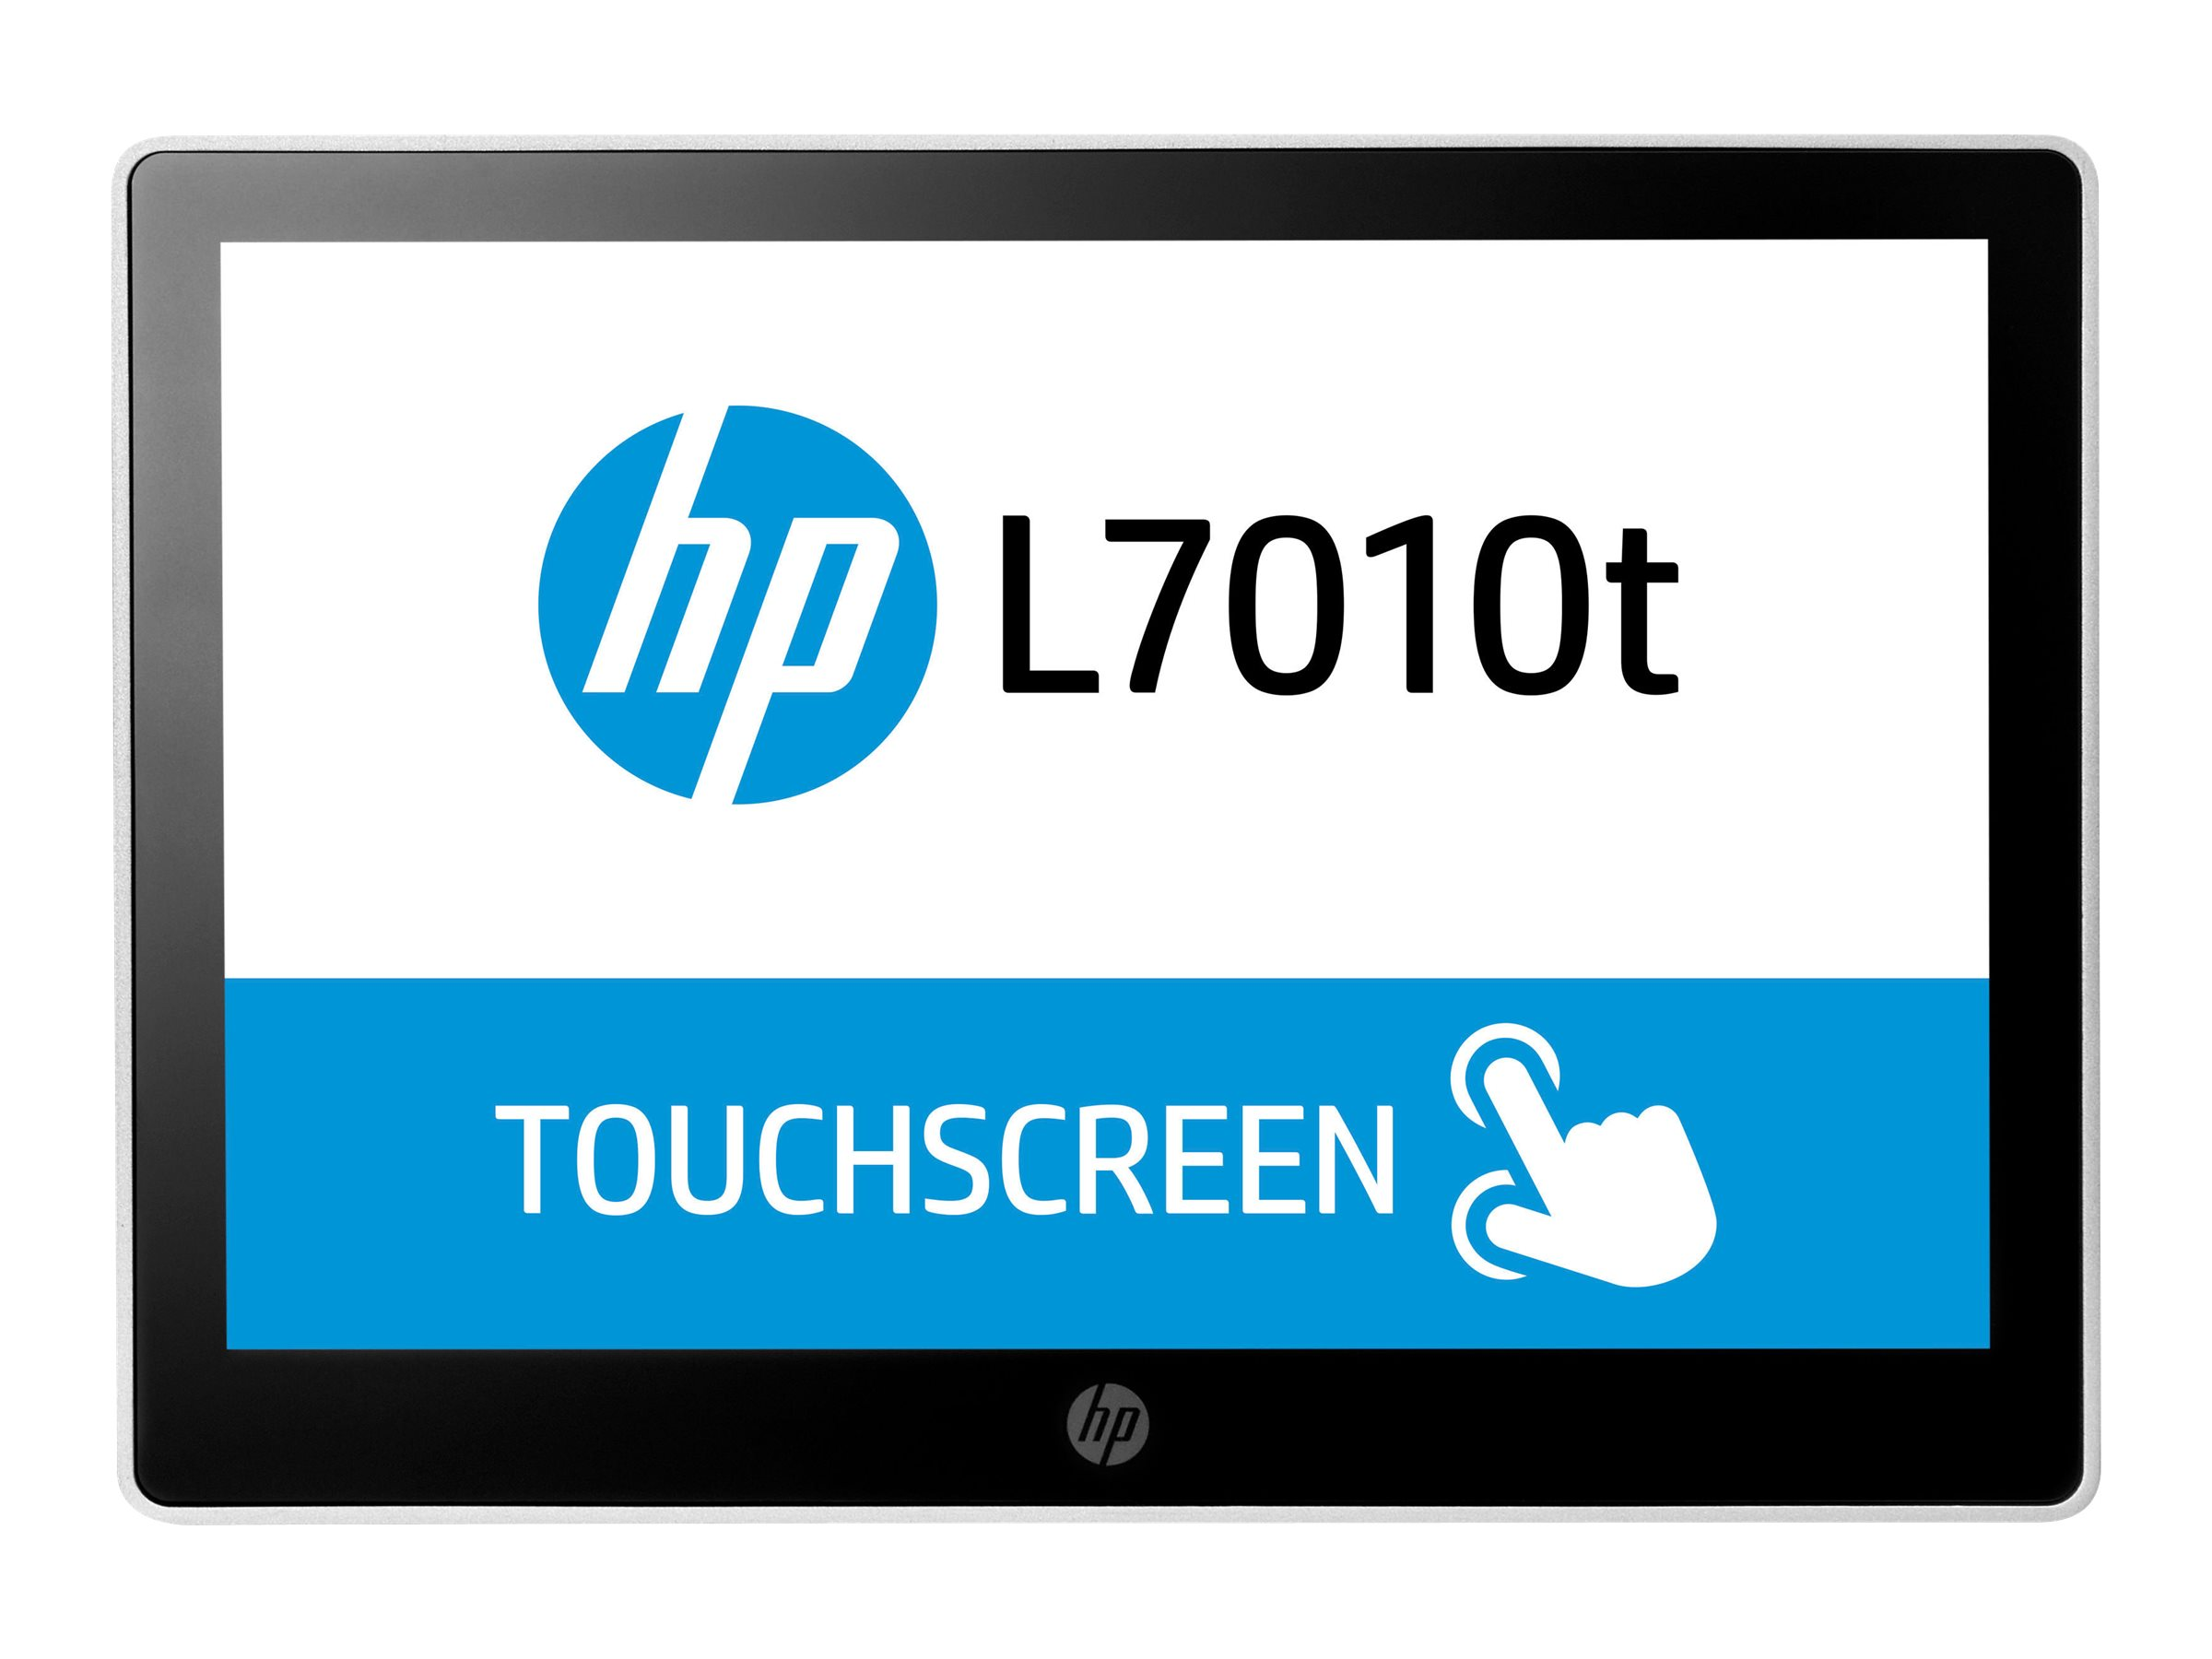 "HP L7010t Retail Touch Monitor - Écran LED avec commutateur KVM - 10.1"" (10.1"" visualisable) - écran tactile - 1280 x 800 - TN - 220 cd/m² - 800:1 - 30 ms - DisplayPort - noir HP, astéroïde"